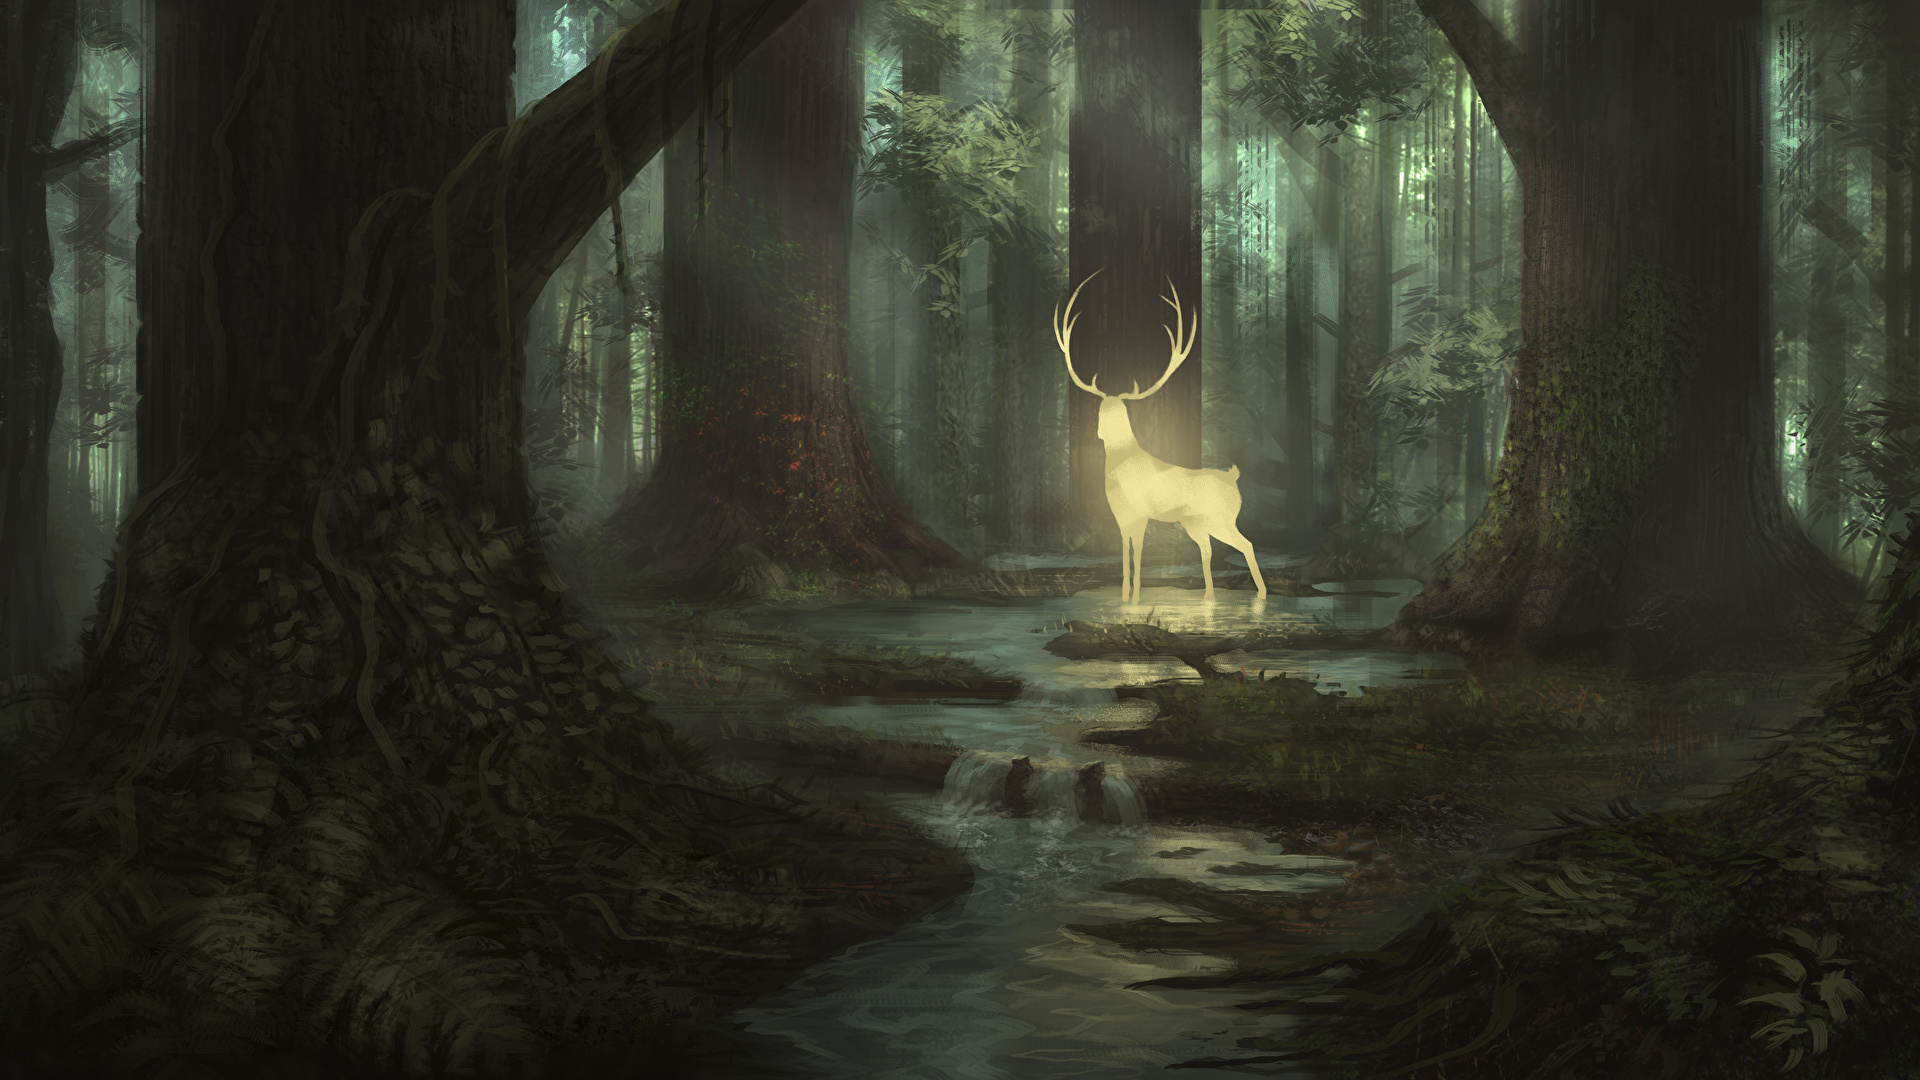 Photos Deer Fantasy Forest Trees Animals Painting Art 1920x1080